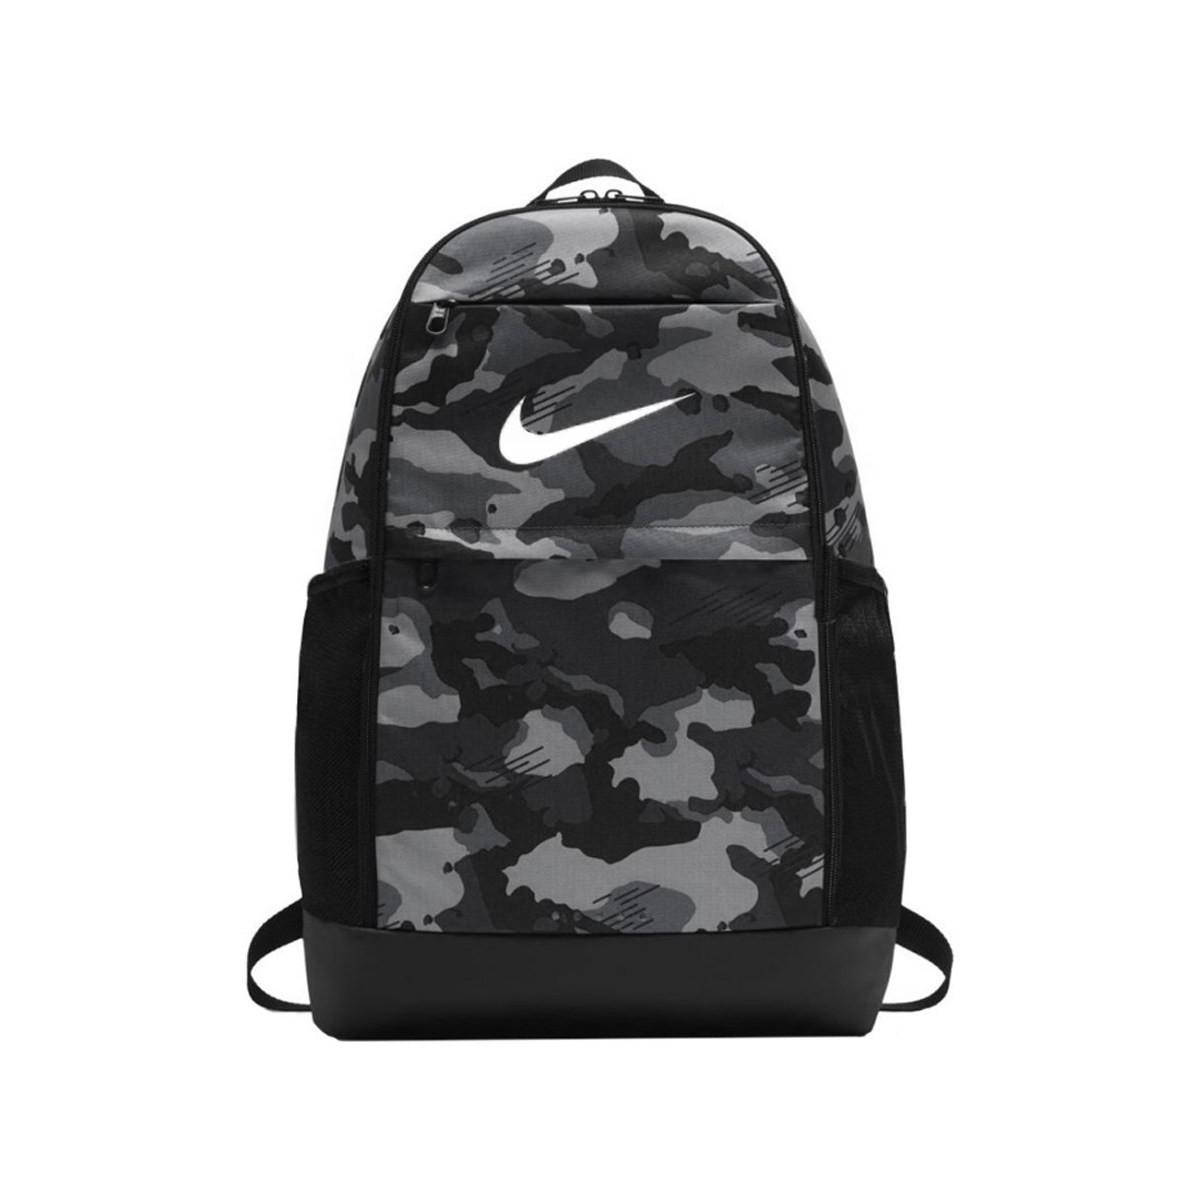 d30fdaf912c5 Nike Nk Brasilia M Men s Backpack In Multicolour in Black for Men - Lyst